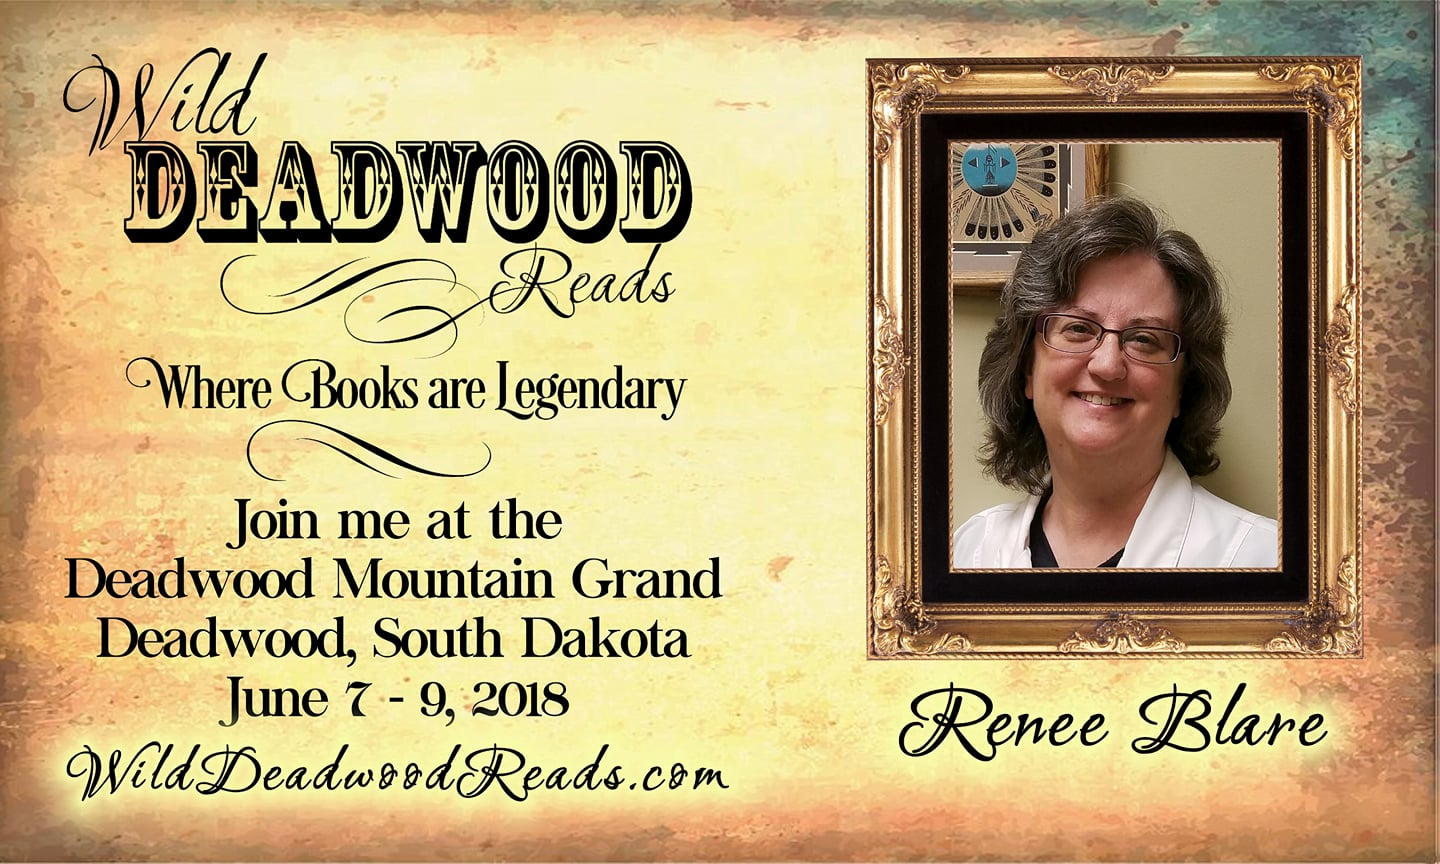 Wild Deadwood Reads